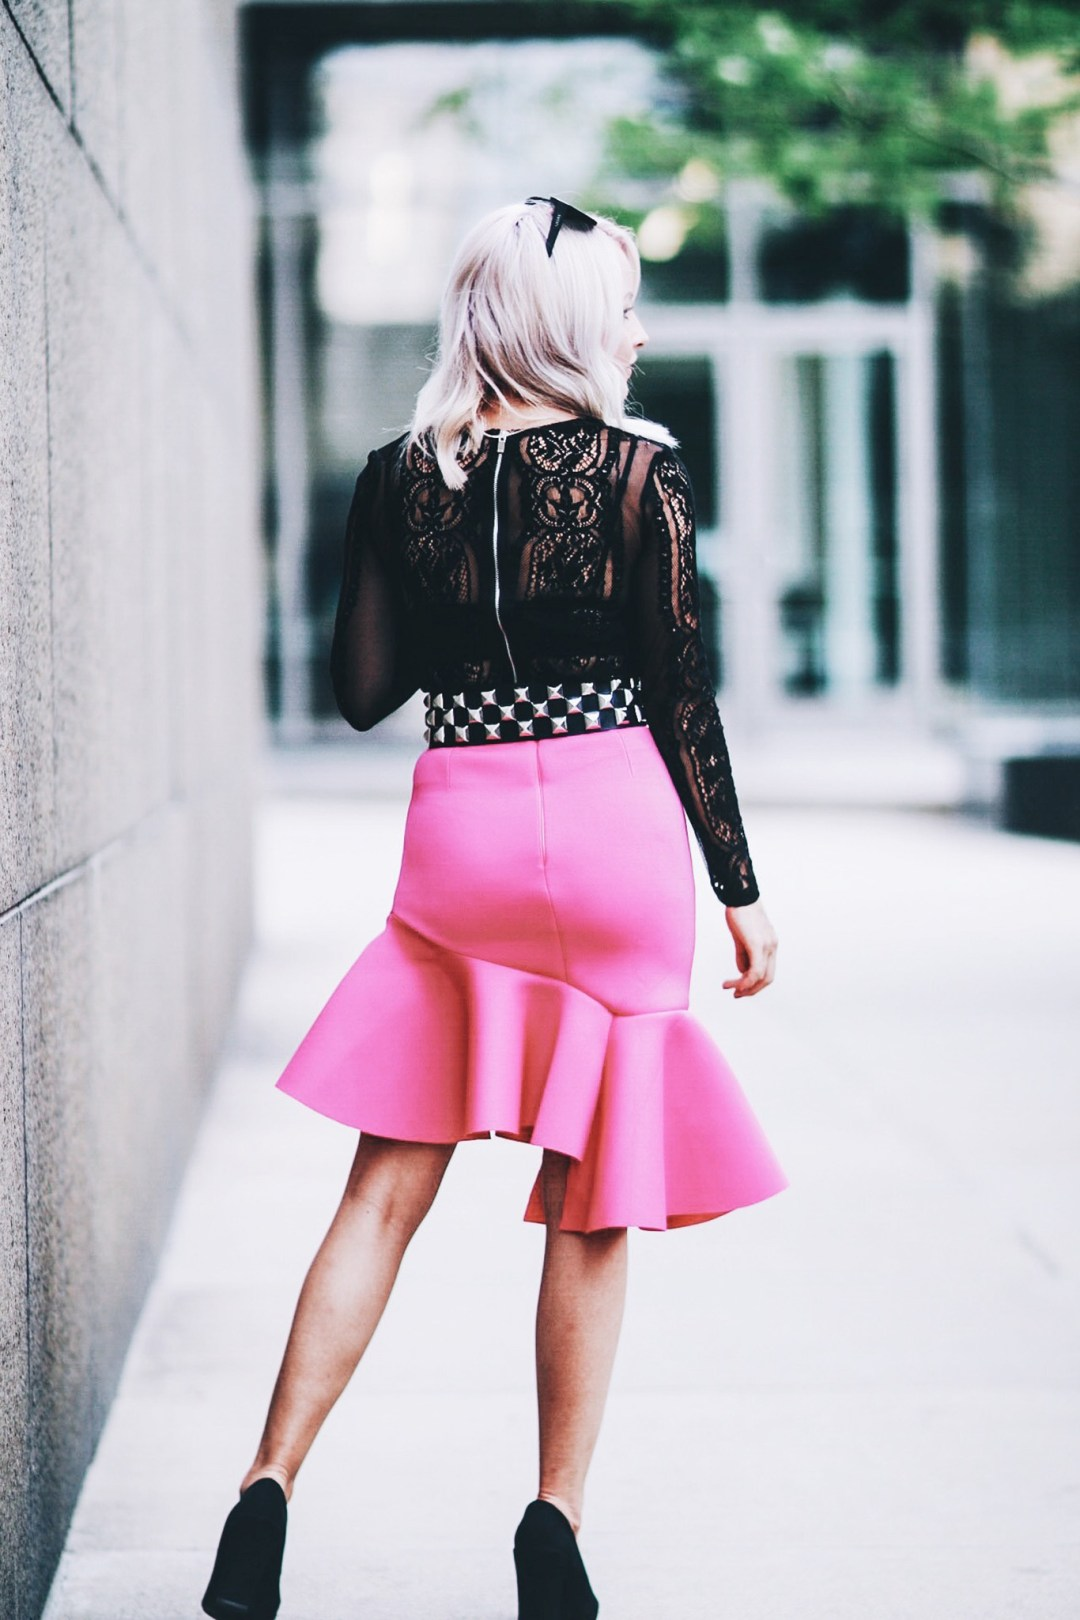 Alena Gidenko of modaprints.com styles a hot pink skirt with a long sleeve lace top, studded belt and black heels